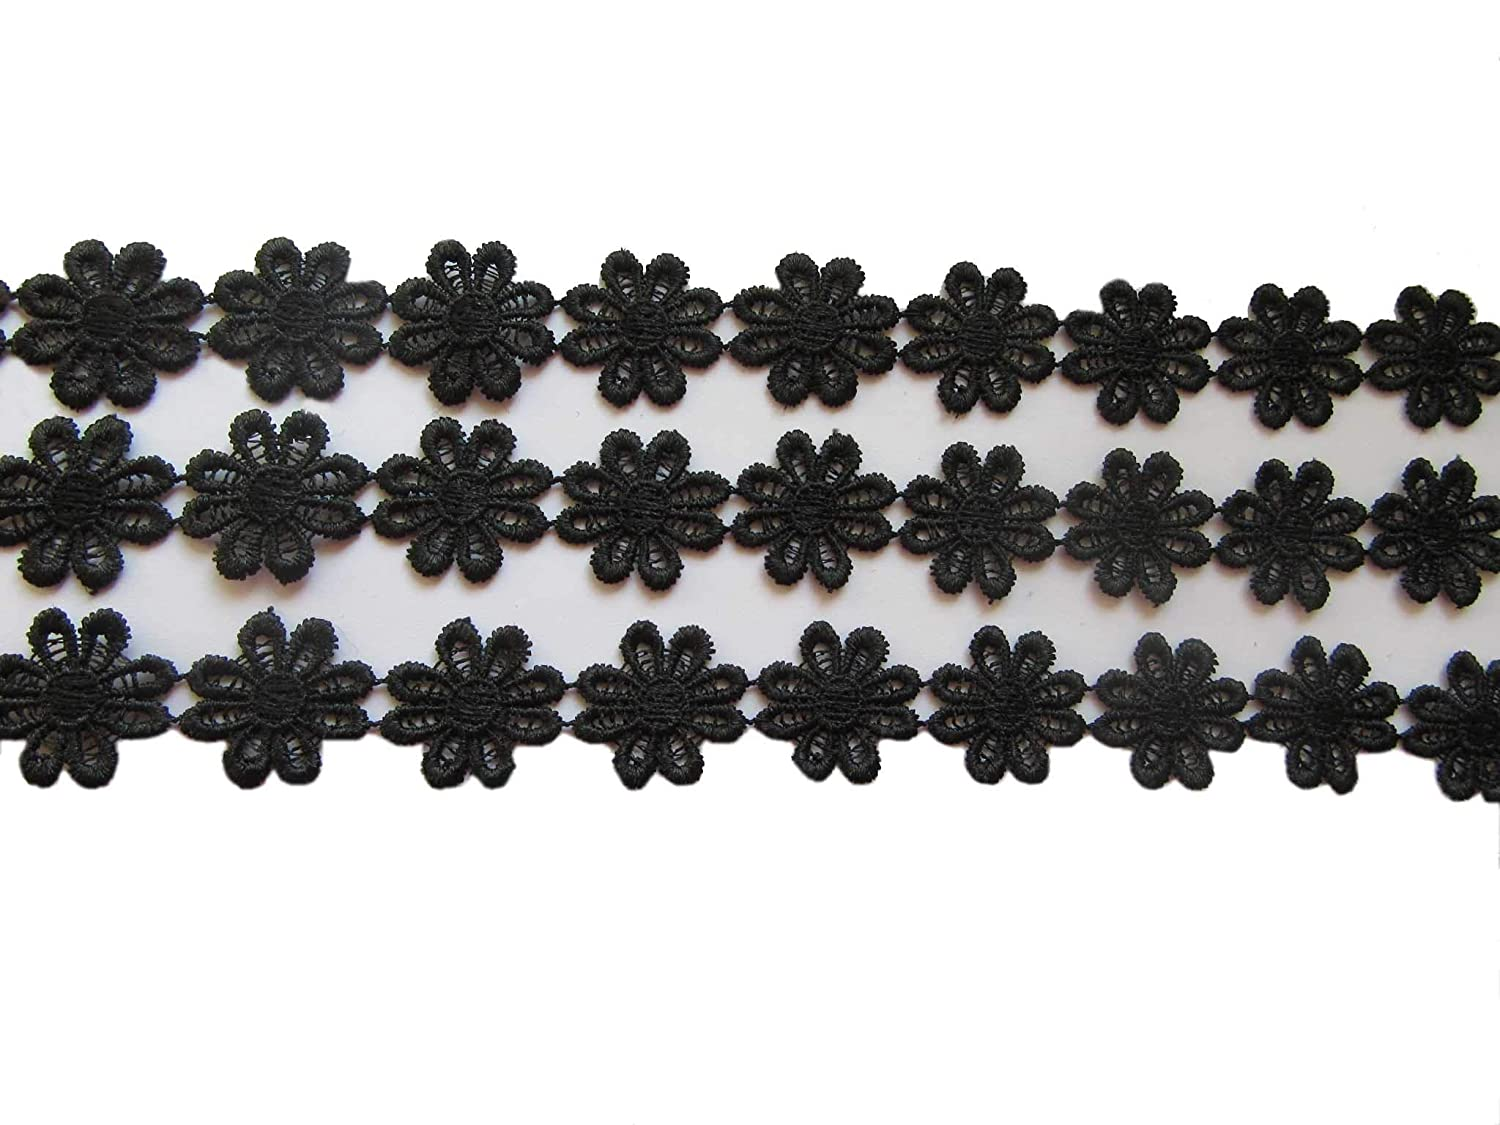 White YYCRAFT 15 Yards Daisy Flower Lace Edge 1 Flower Trim Applique for DIY Sewing Embellishment Crafts